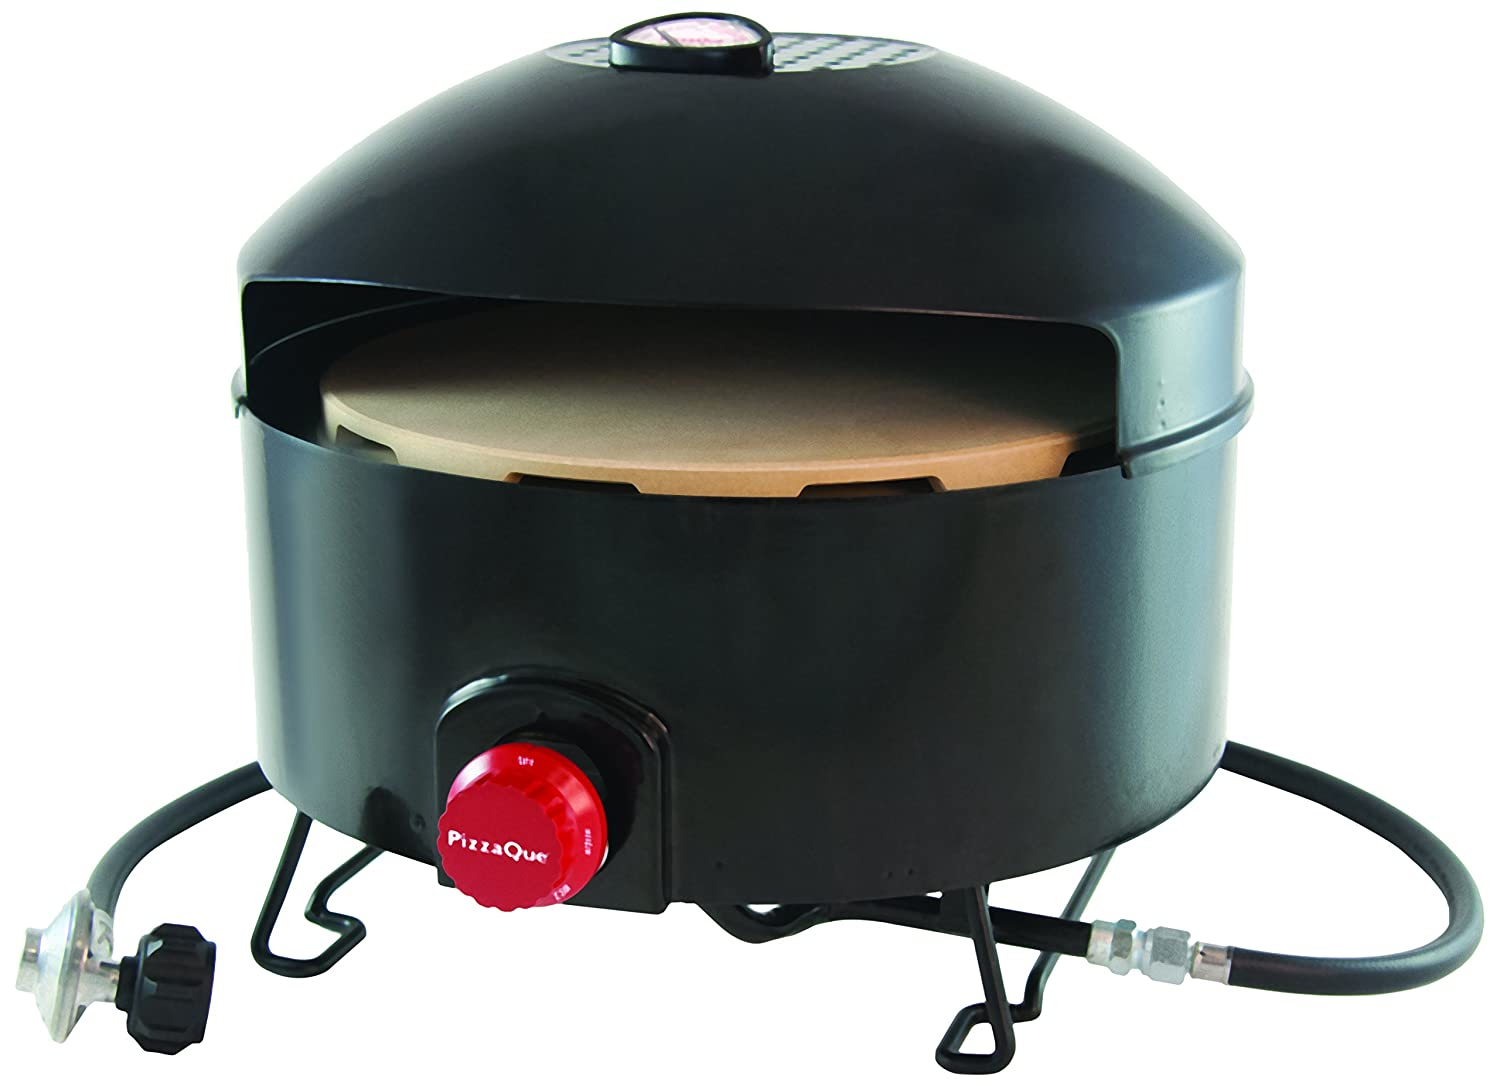 Pizzacraft PC6500 PizzaQue best Portable Outdoor Pizza Oven